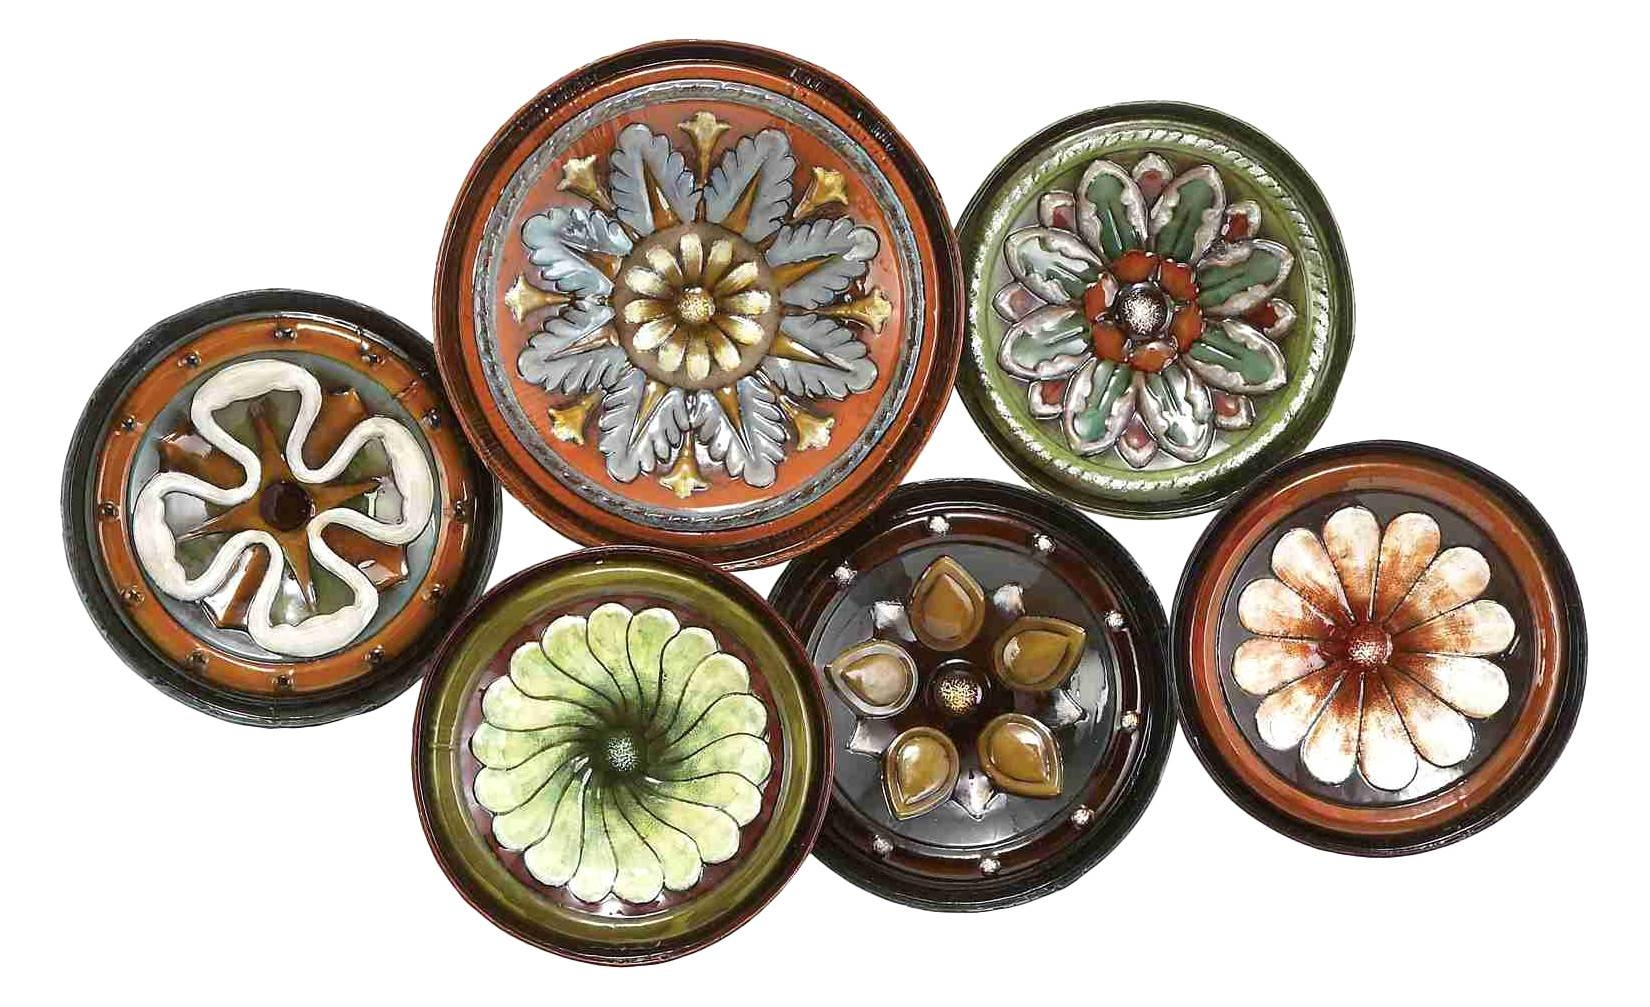 Flowery Plate Collection – Floral Metal Wall Art Intended For Most Popular India Metal Wall Art (View 18 of 20)